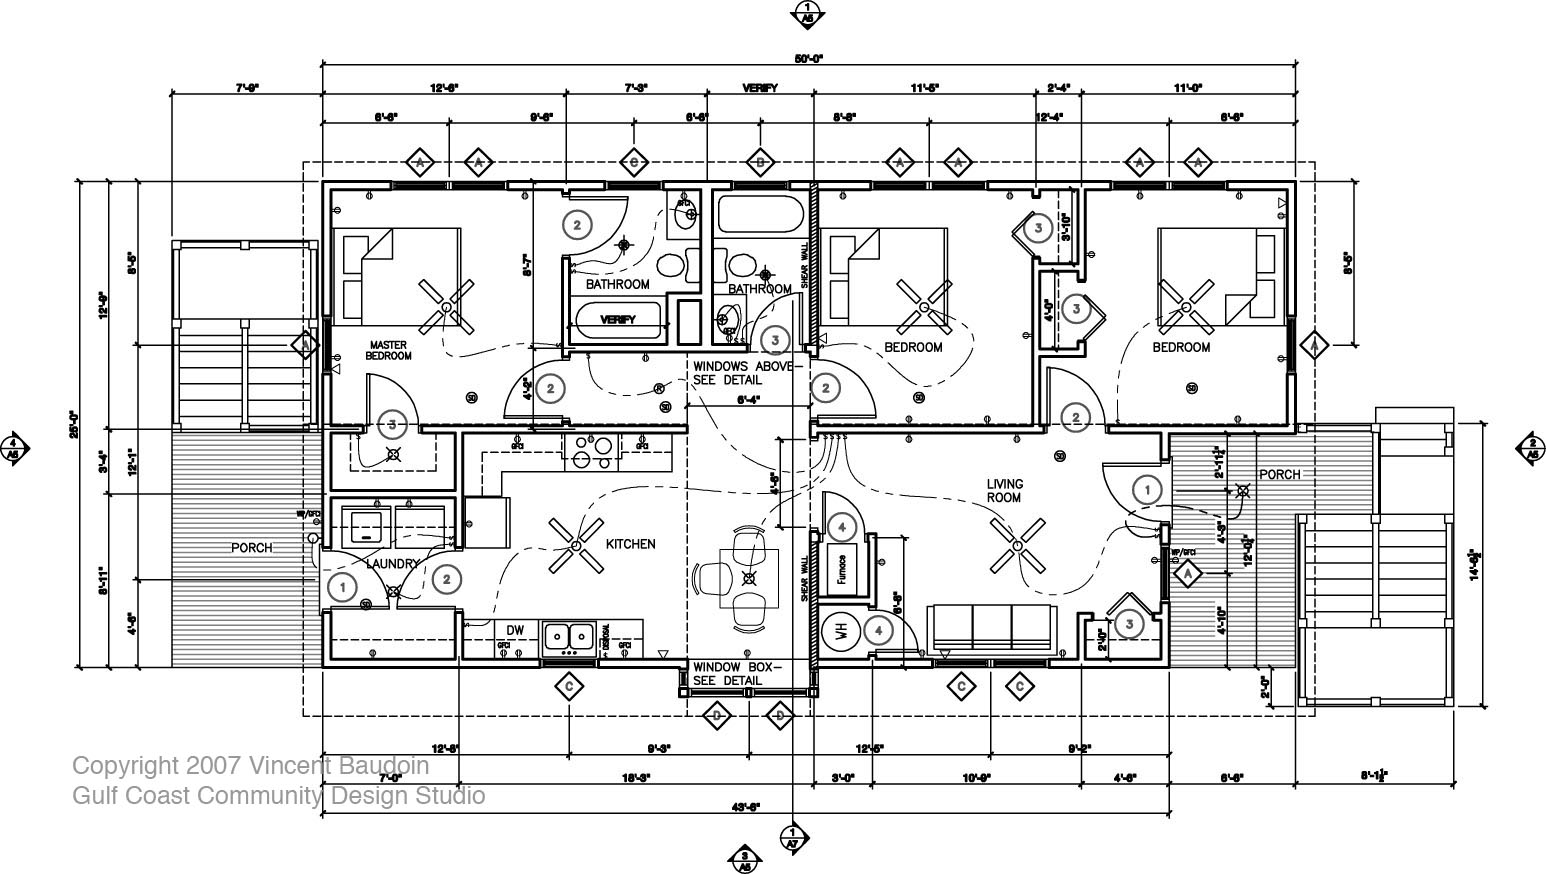 building plans valdonprops valdonprops house building plans luxury with images of house building concept in design - House Building Plans